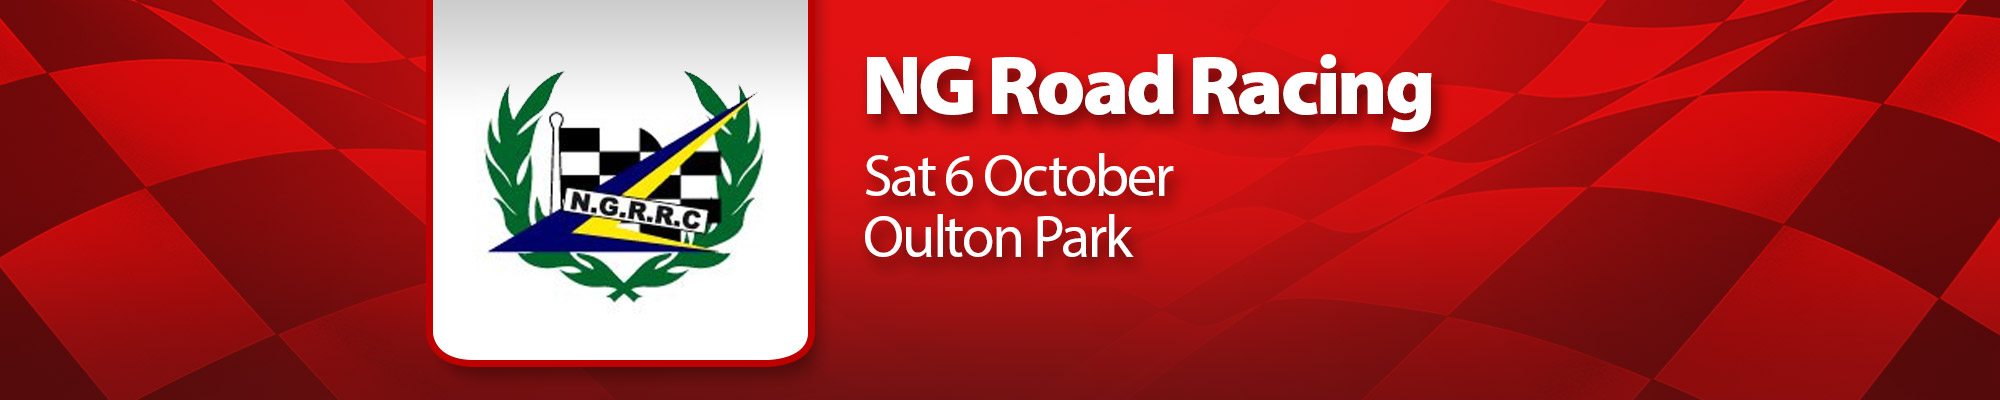 NG Road Racing Bike Club Championships